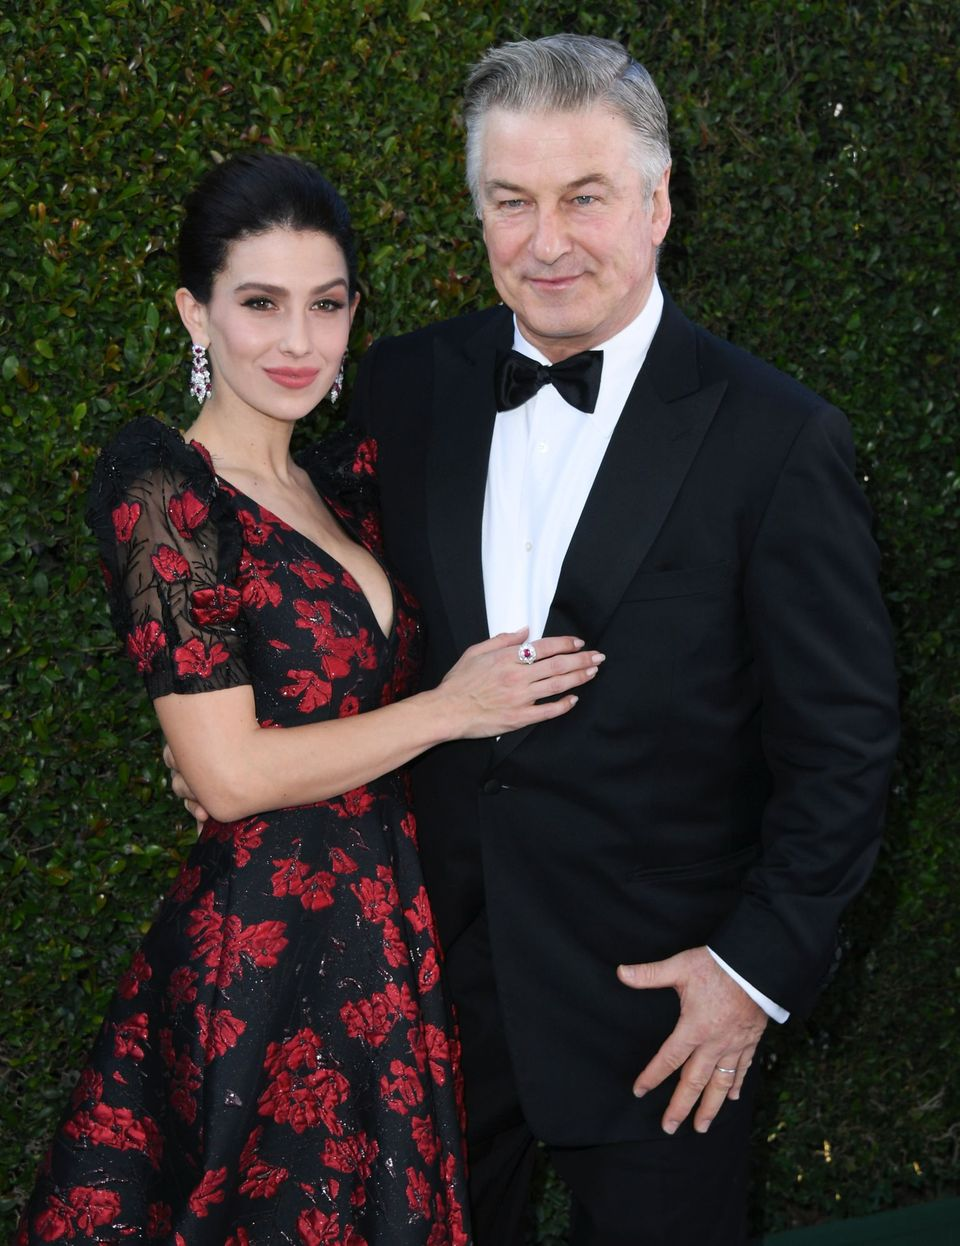 Hilaria Baldwin and Alec Baldwin during the 25th Annual Screen Actors Guild Awards at The Shrine Auditorium on January 27, 2019 in Los Angeles, California. | Source: Getty Images